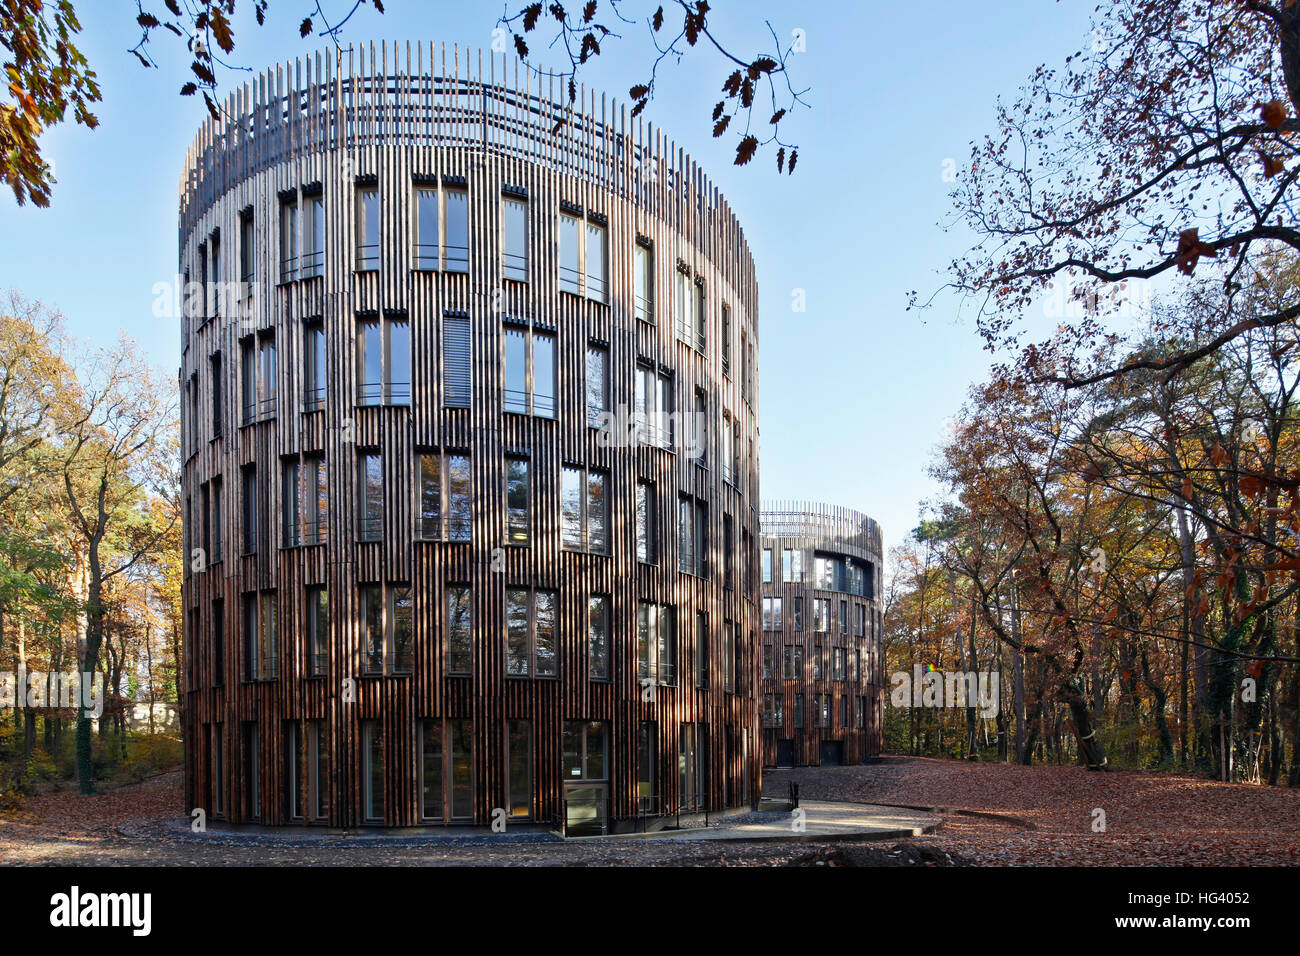 Potsdam Institute for Climate Impact Research, Berlin, Germany. - Stock Image